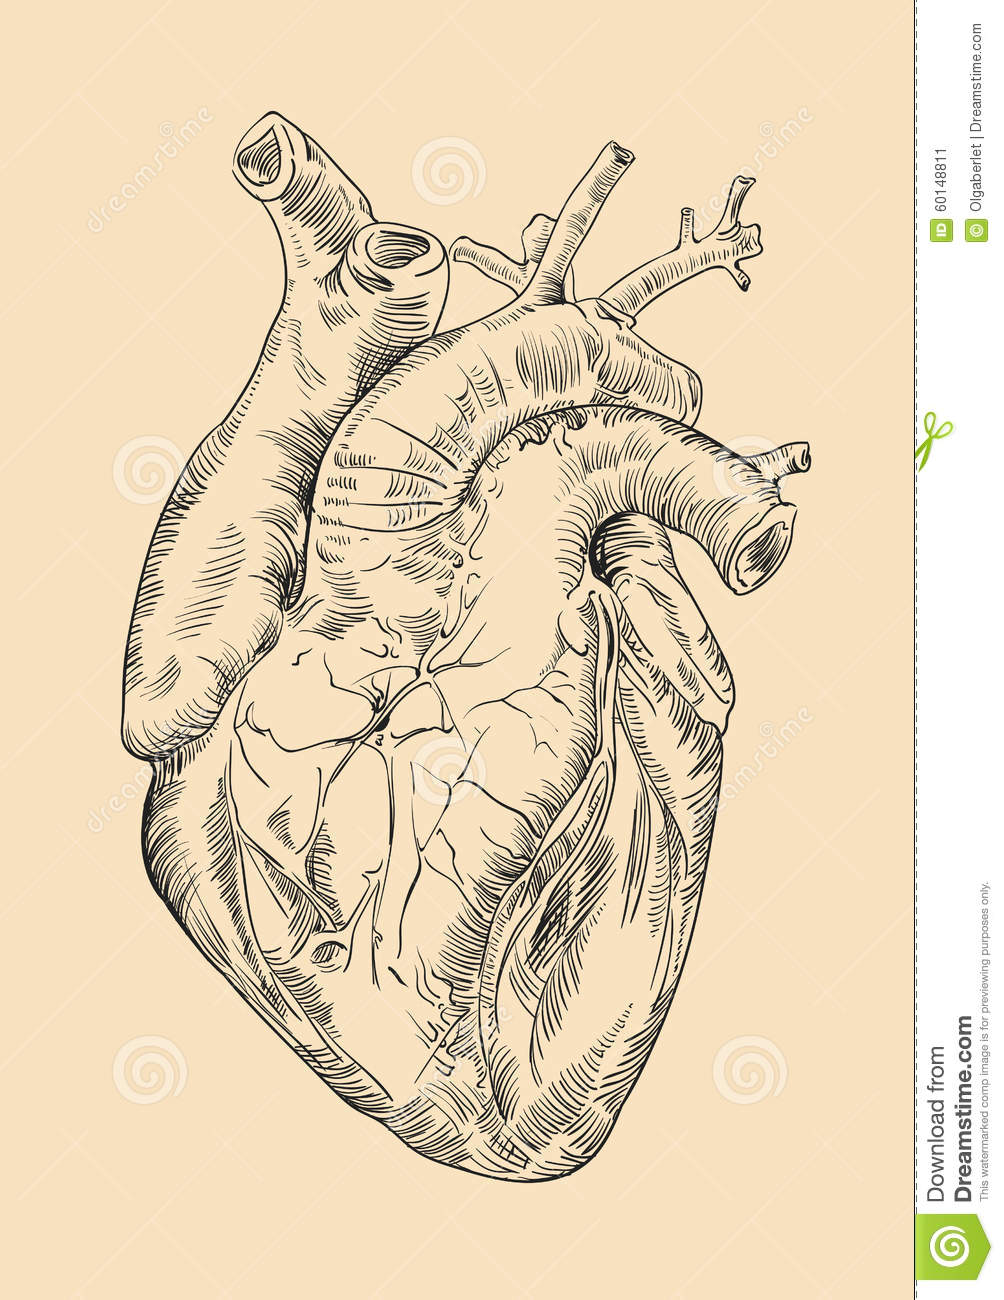 Drawing Human Heart With Flowers Stock Illustration - Illustration ...